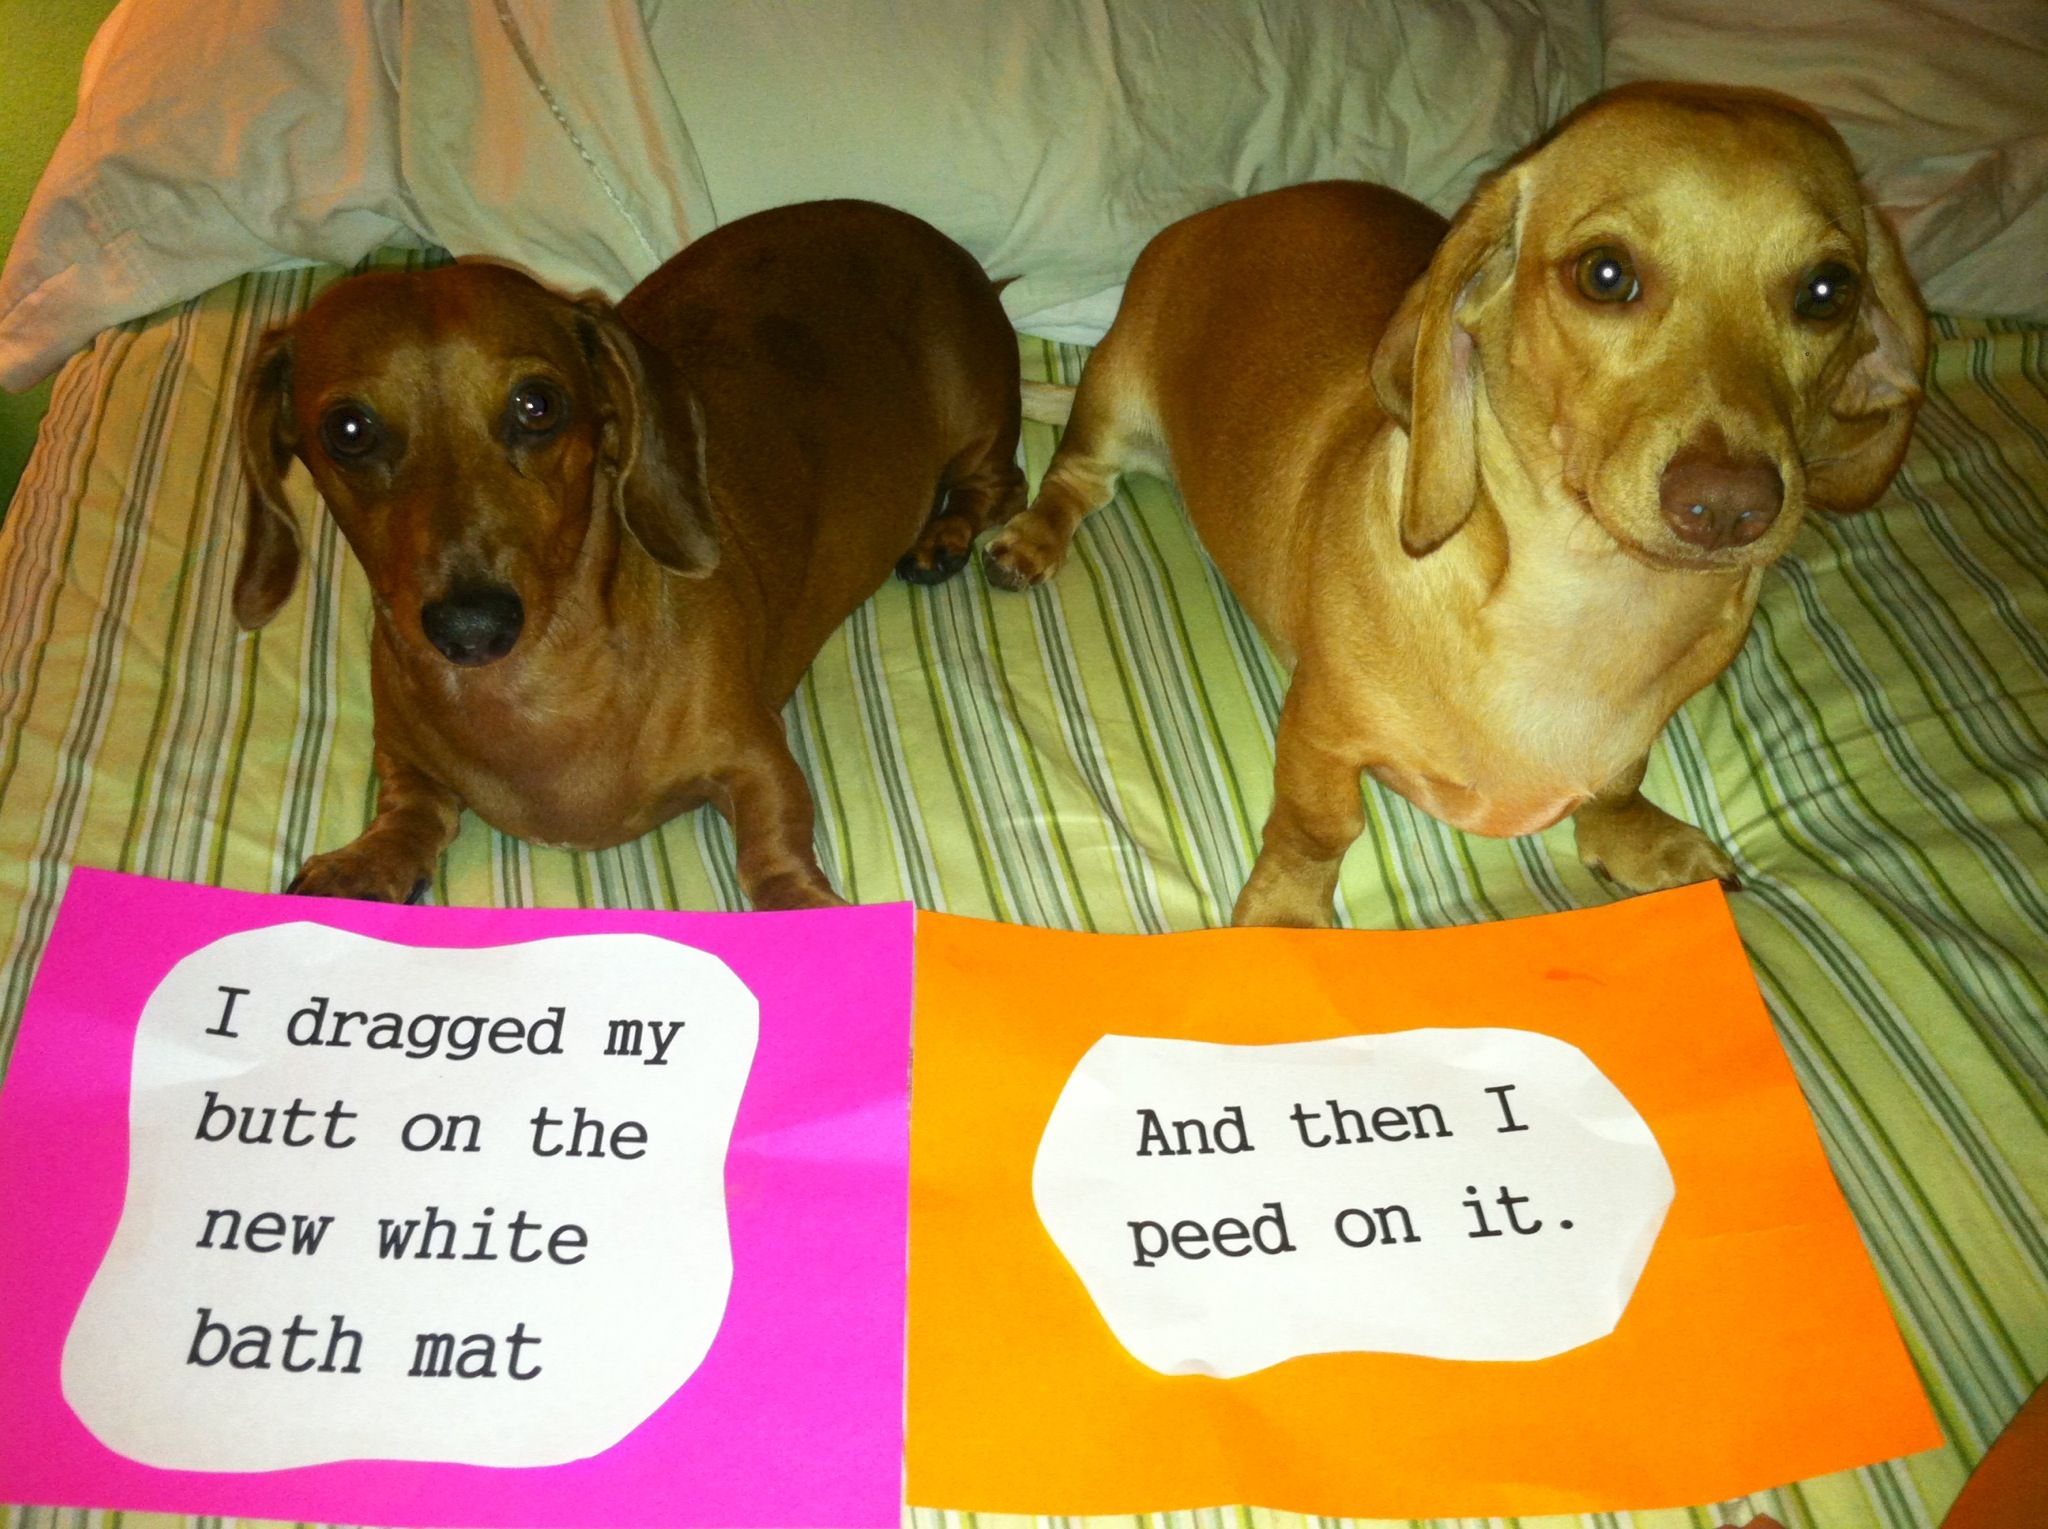 Dachshund Dog Shaming